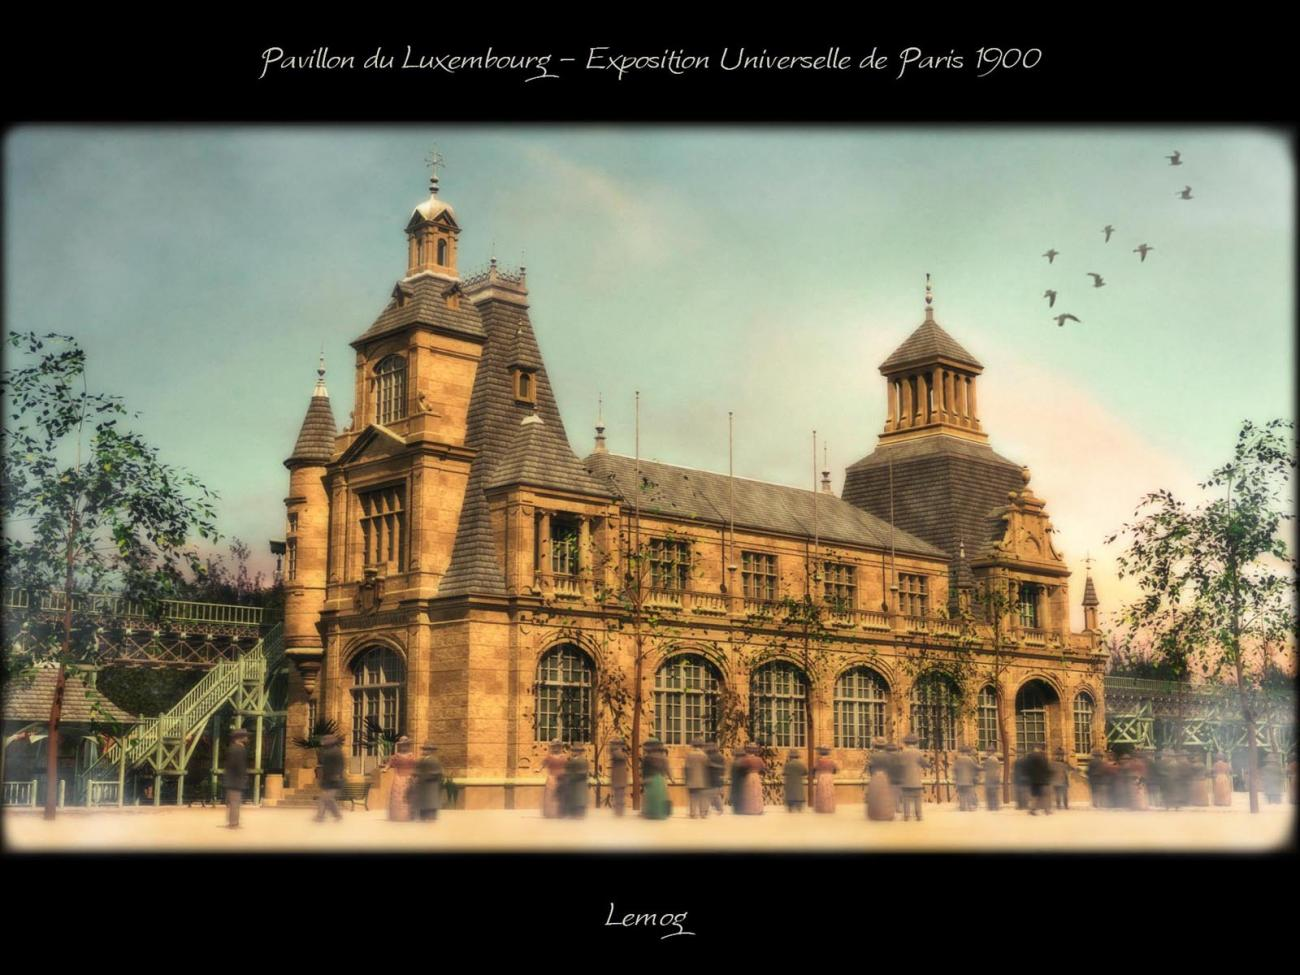 Paris World's Fair 1900 - Pavilion of Luxembourg